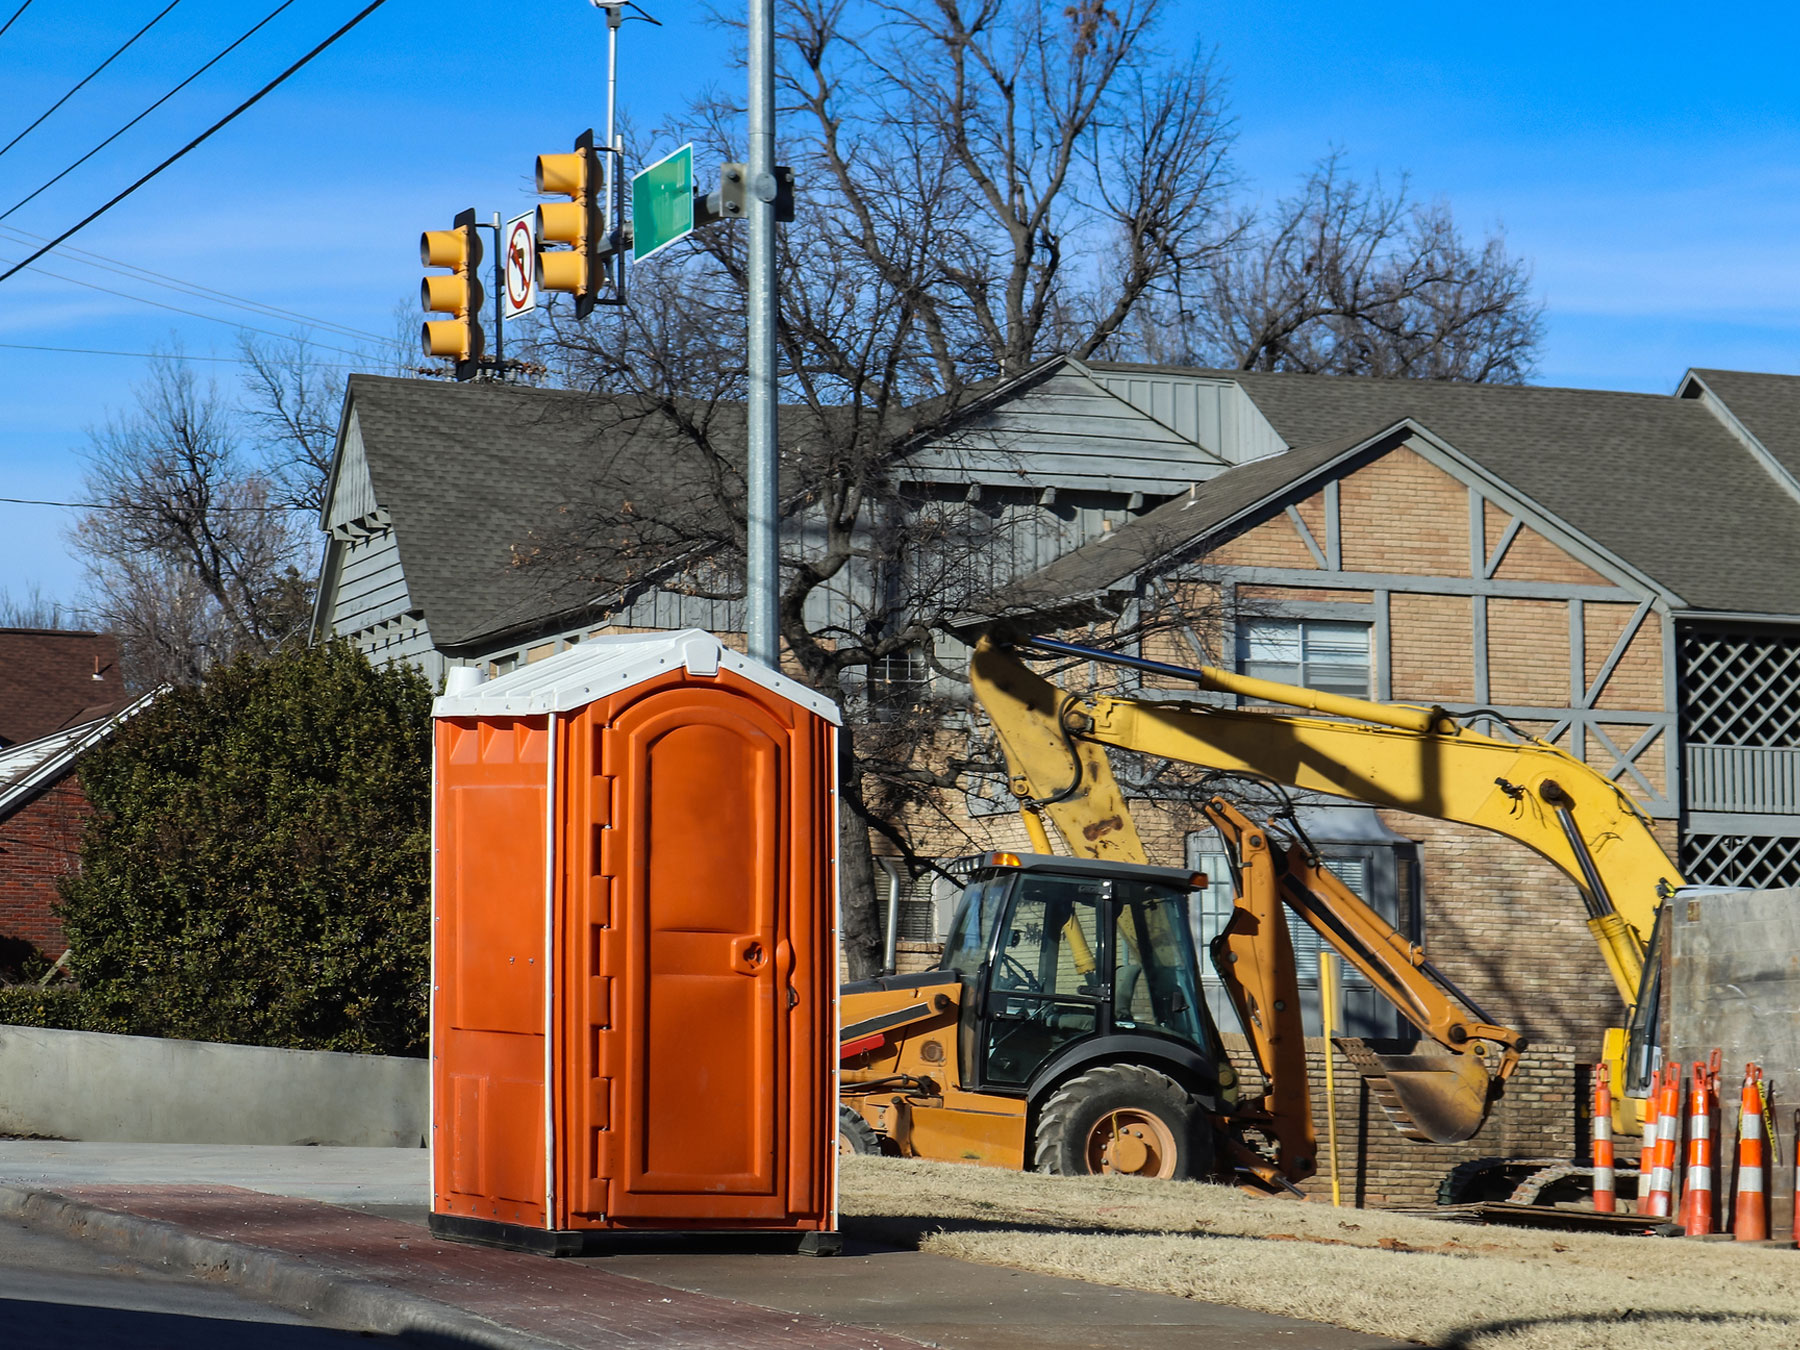 How do Porta-Potties Work?